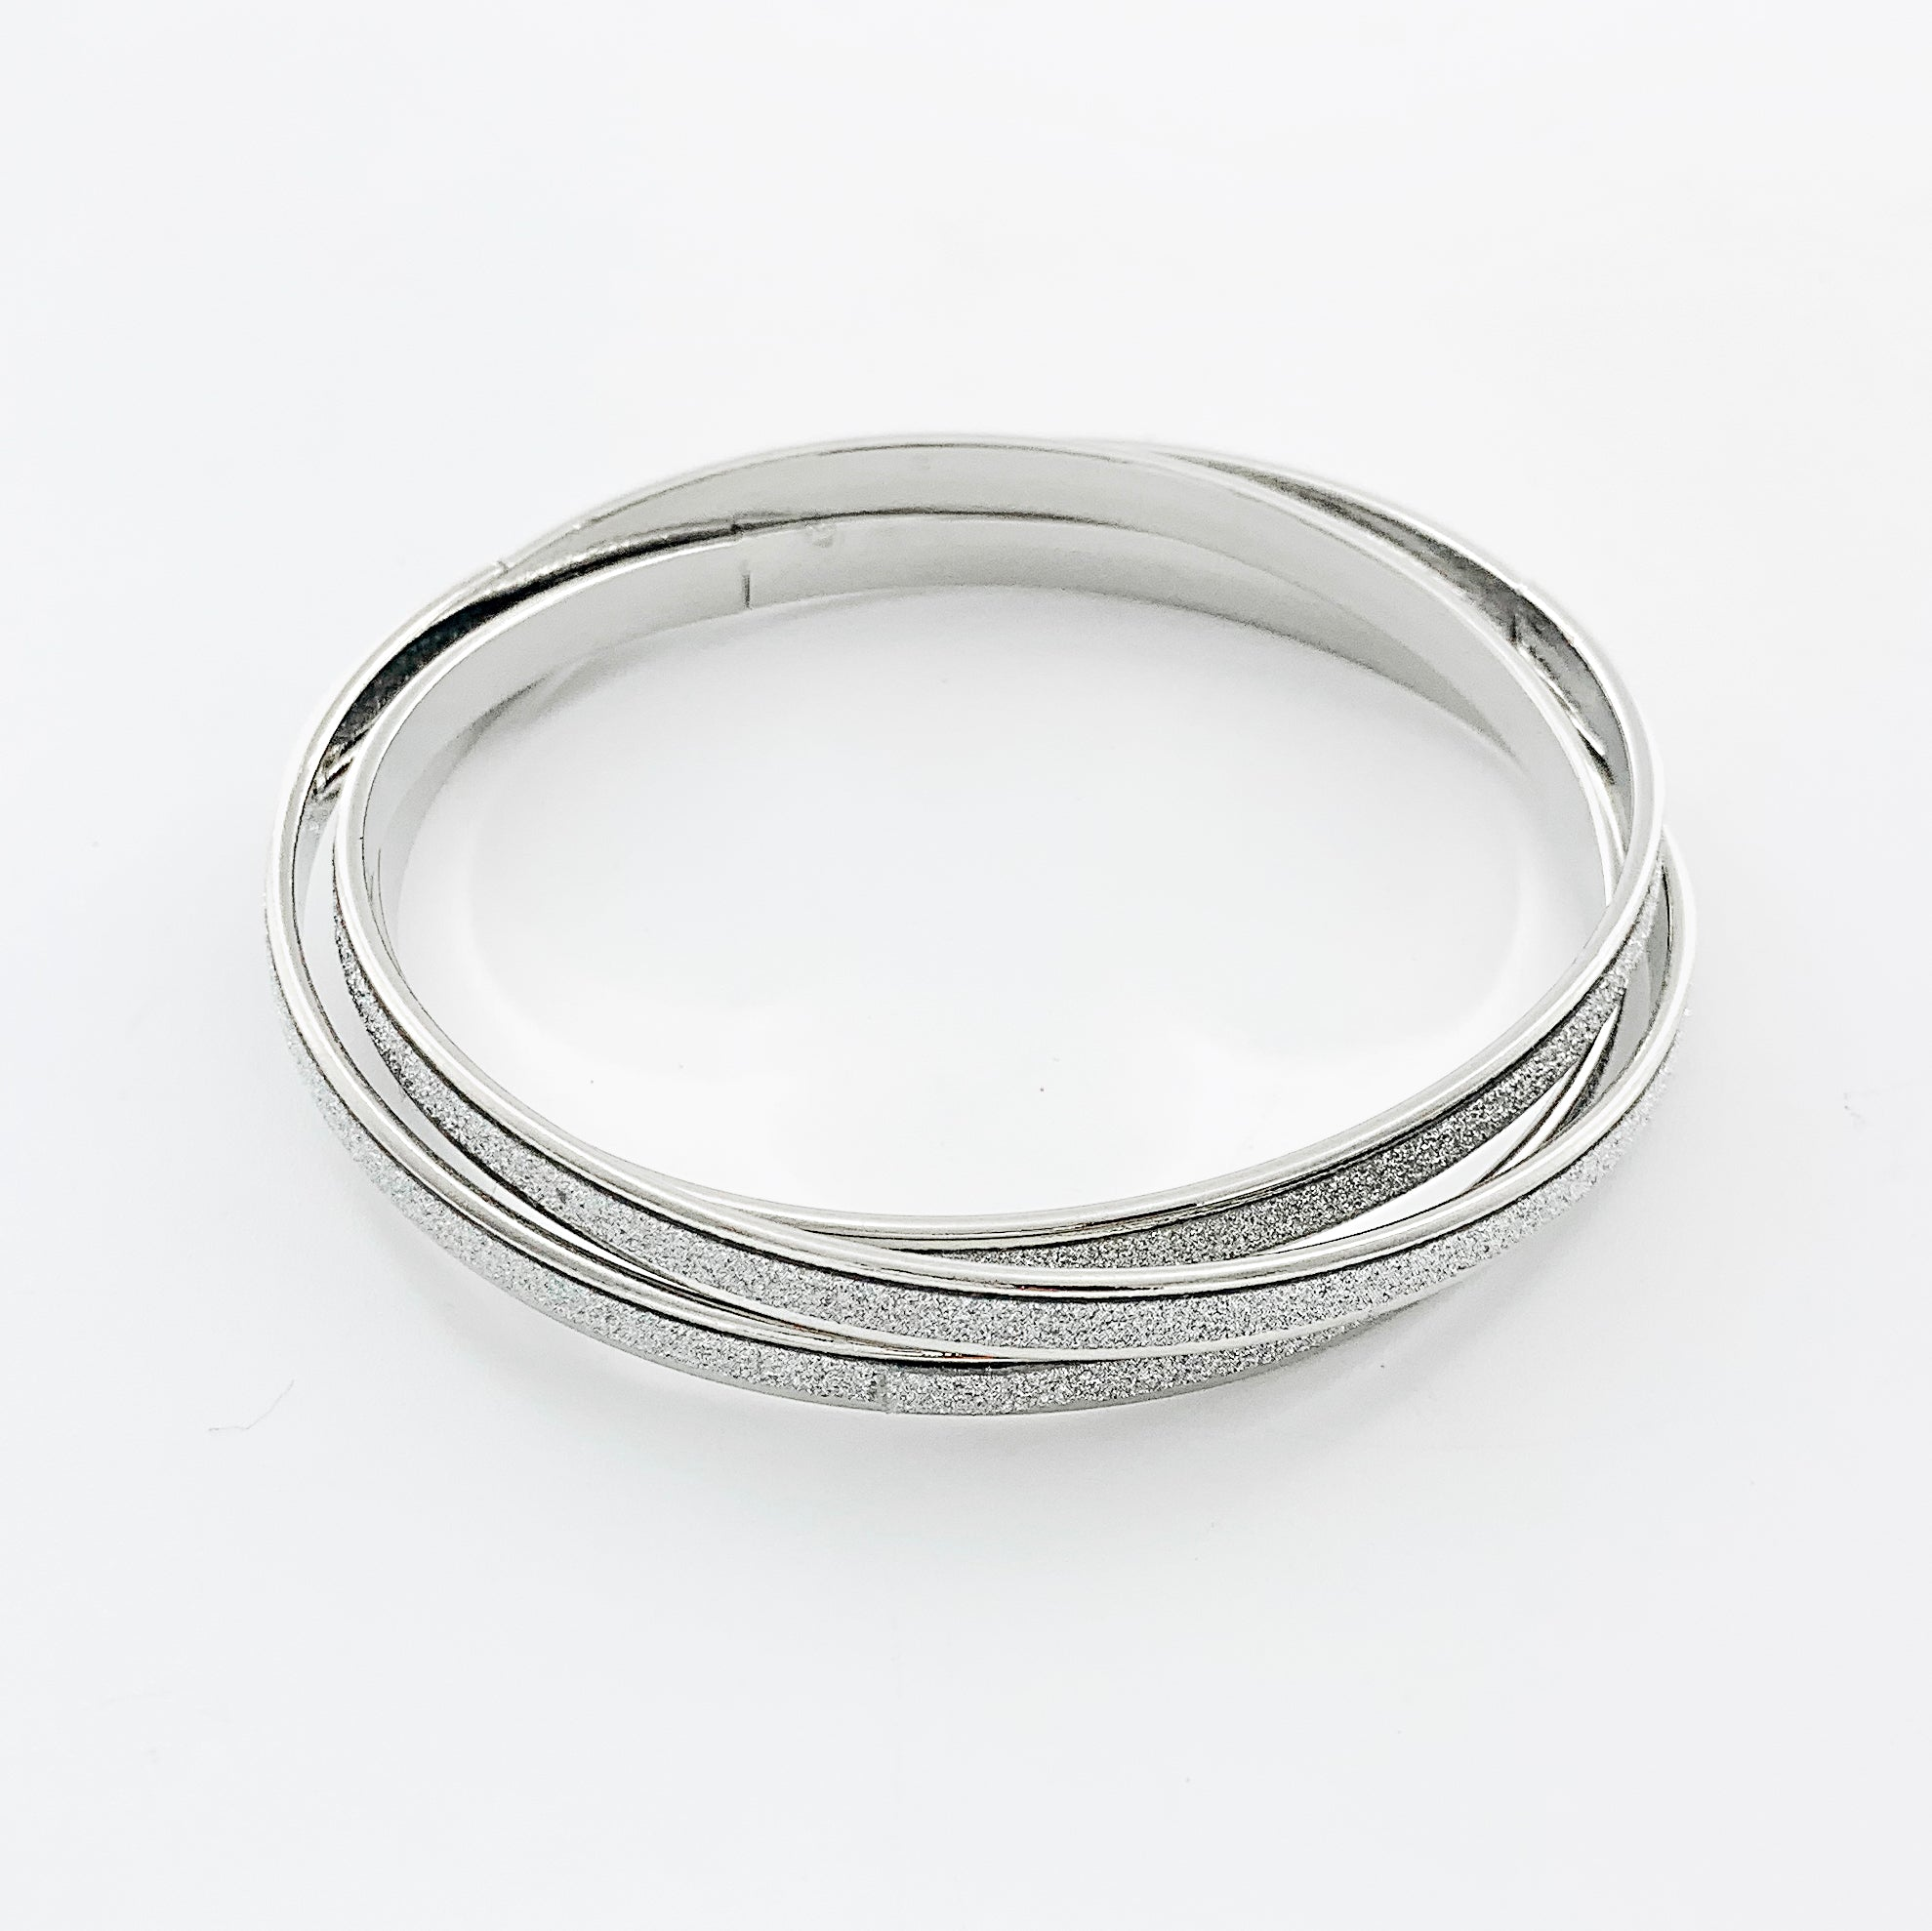 Thin silver bangles with glitter finish